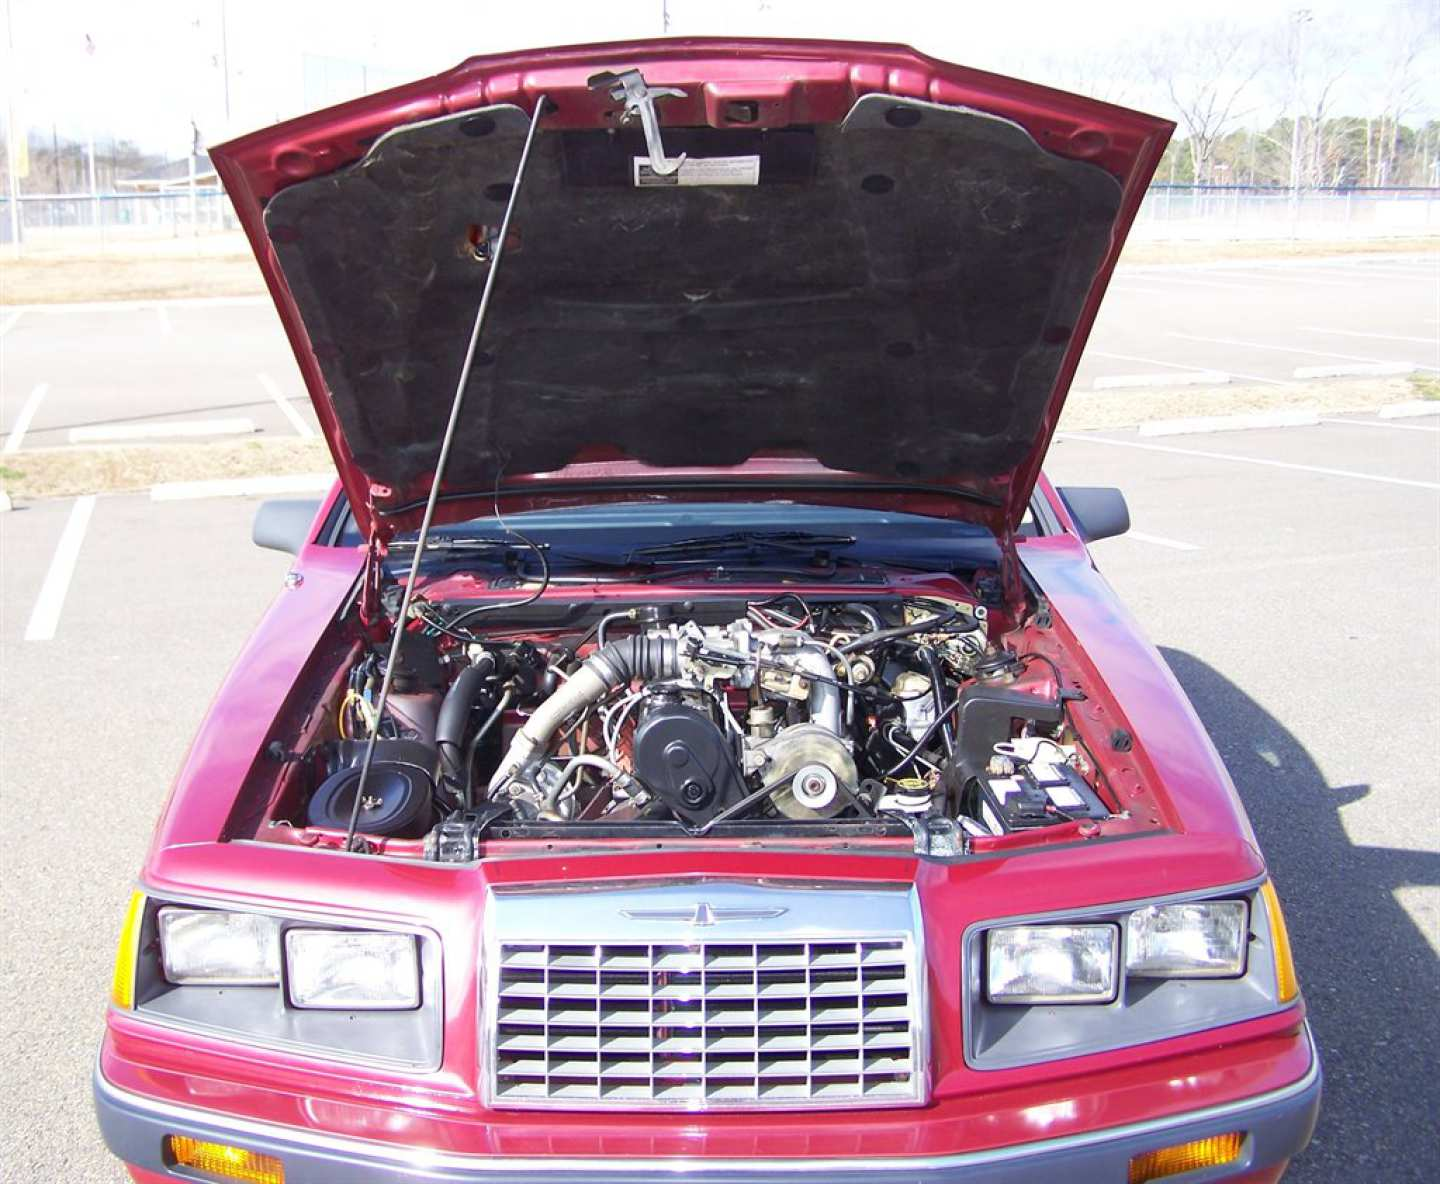 43rd Image of a 1984 FORD THUNDERBIRD